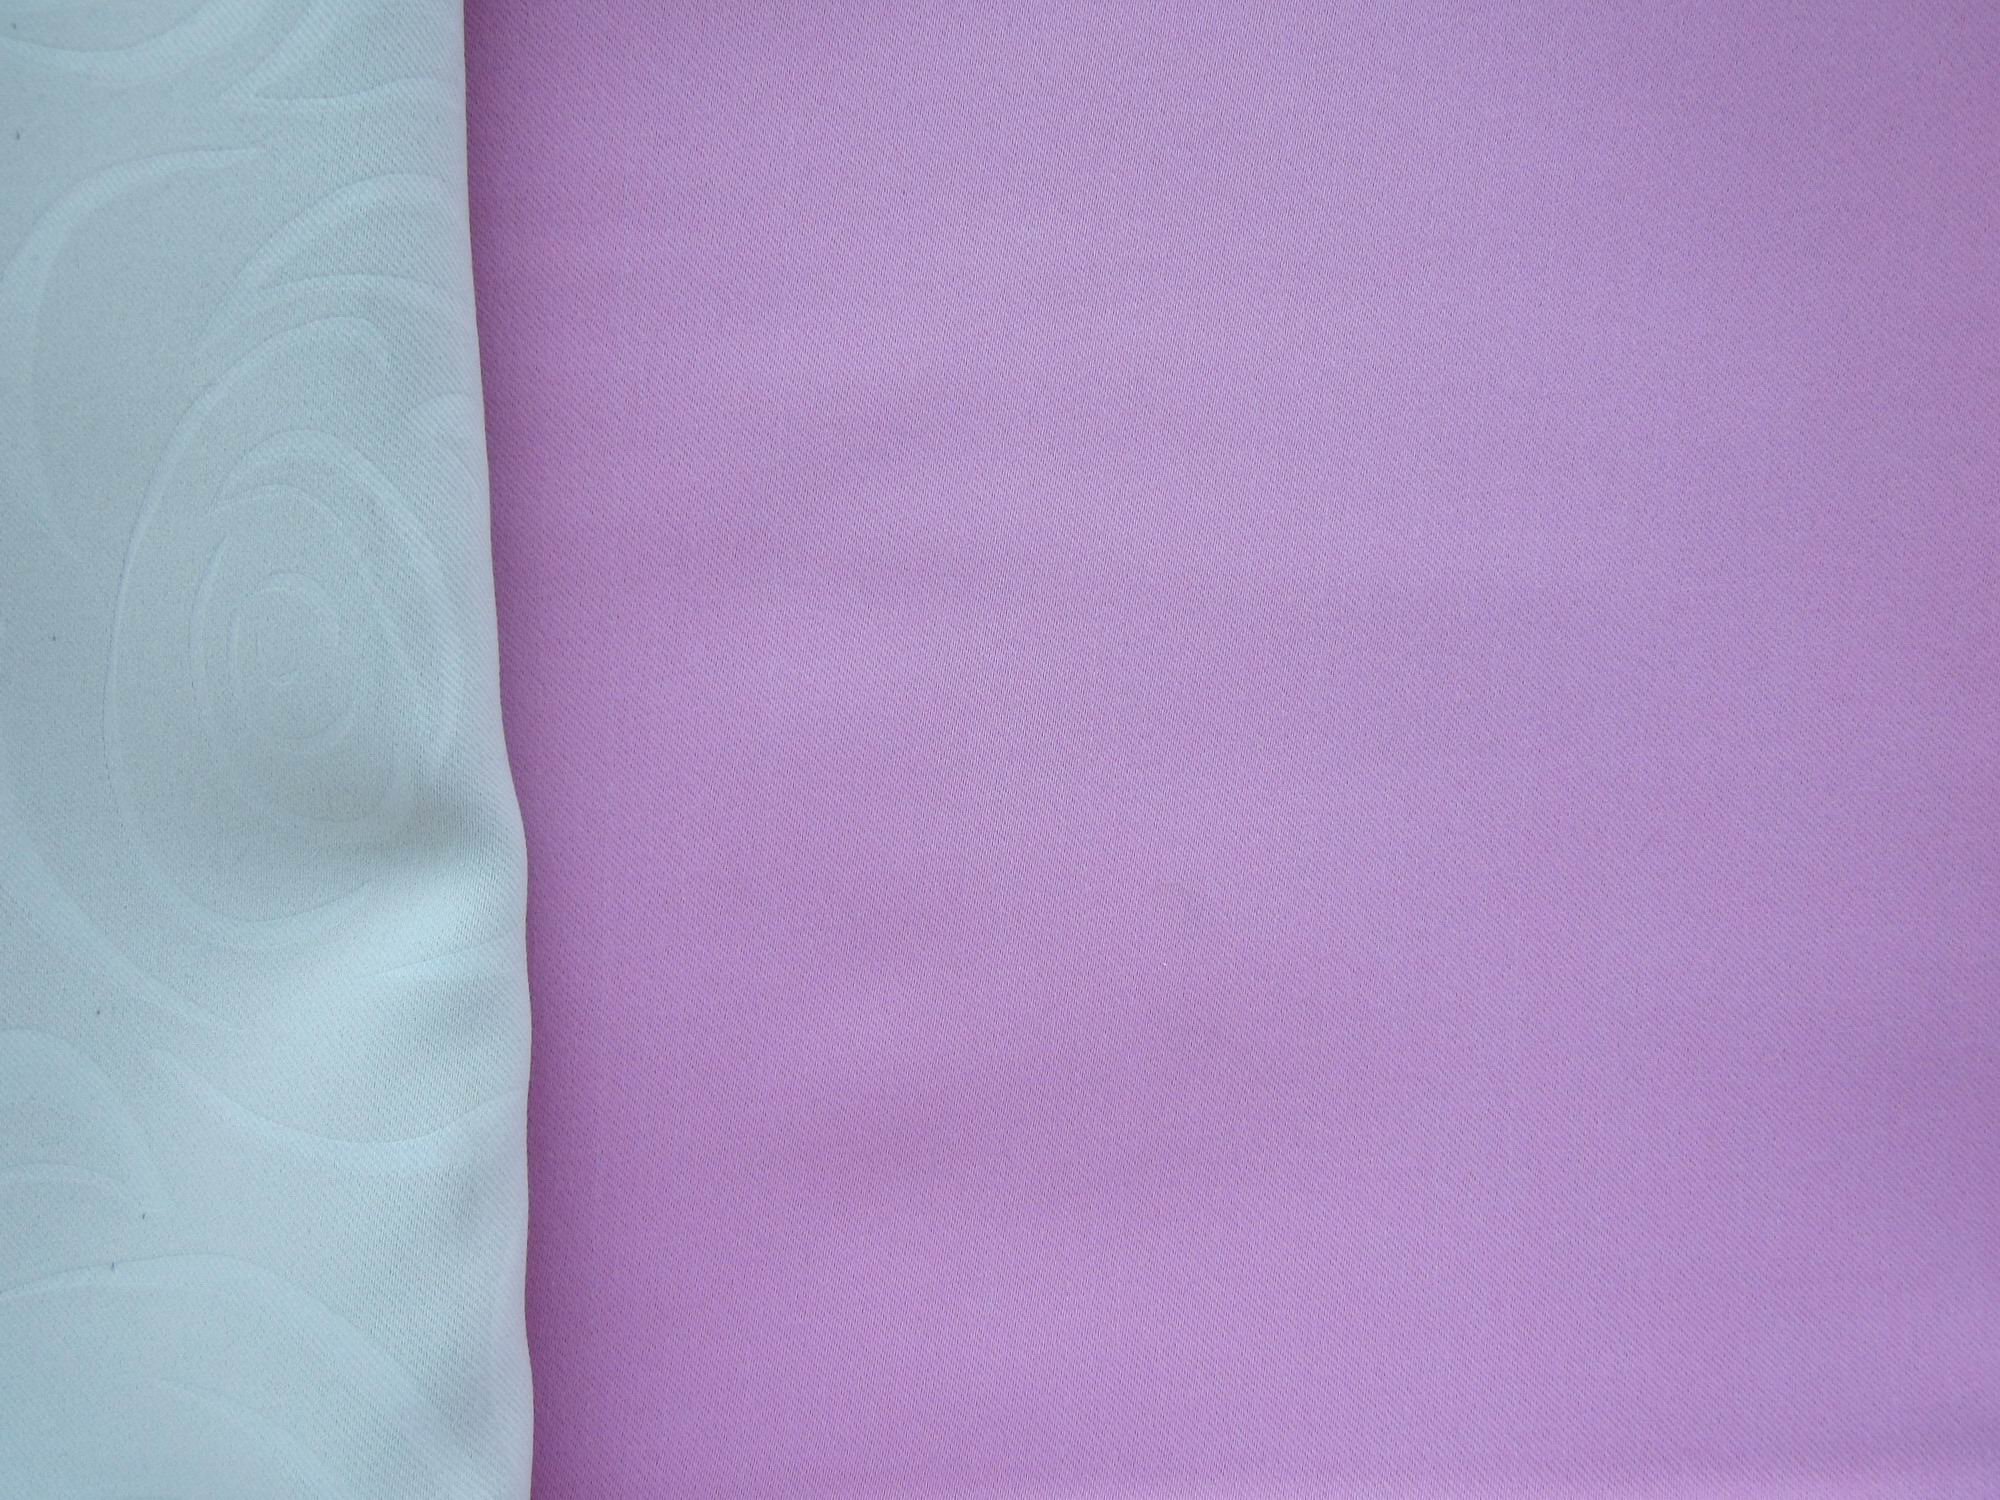 polyster cotton 65/35 dyed fabric